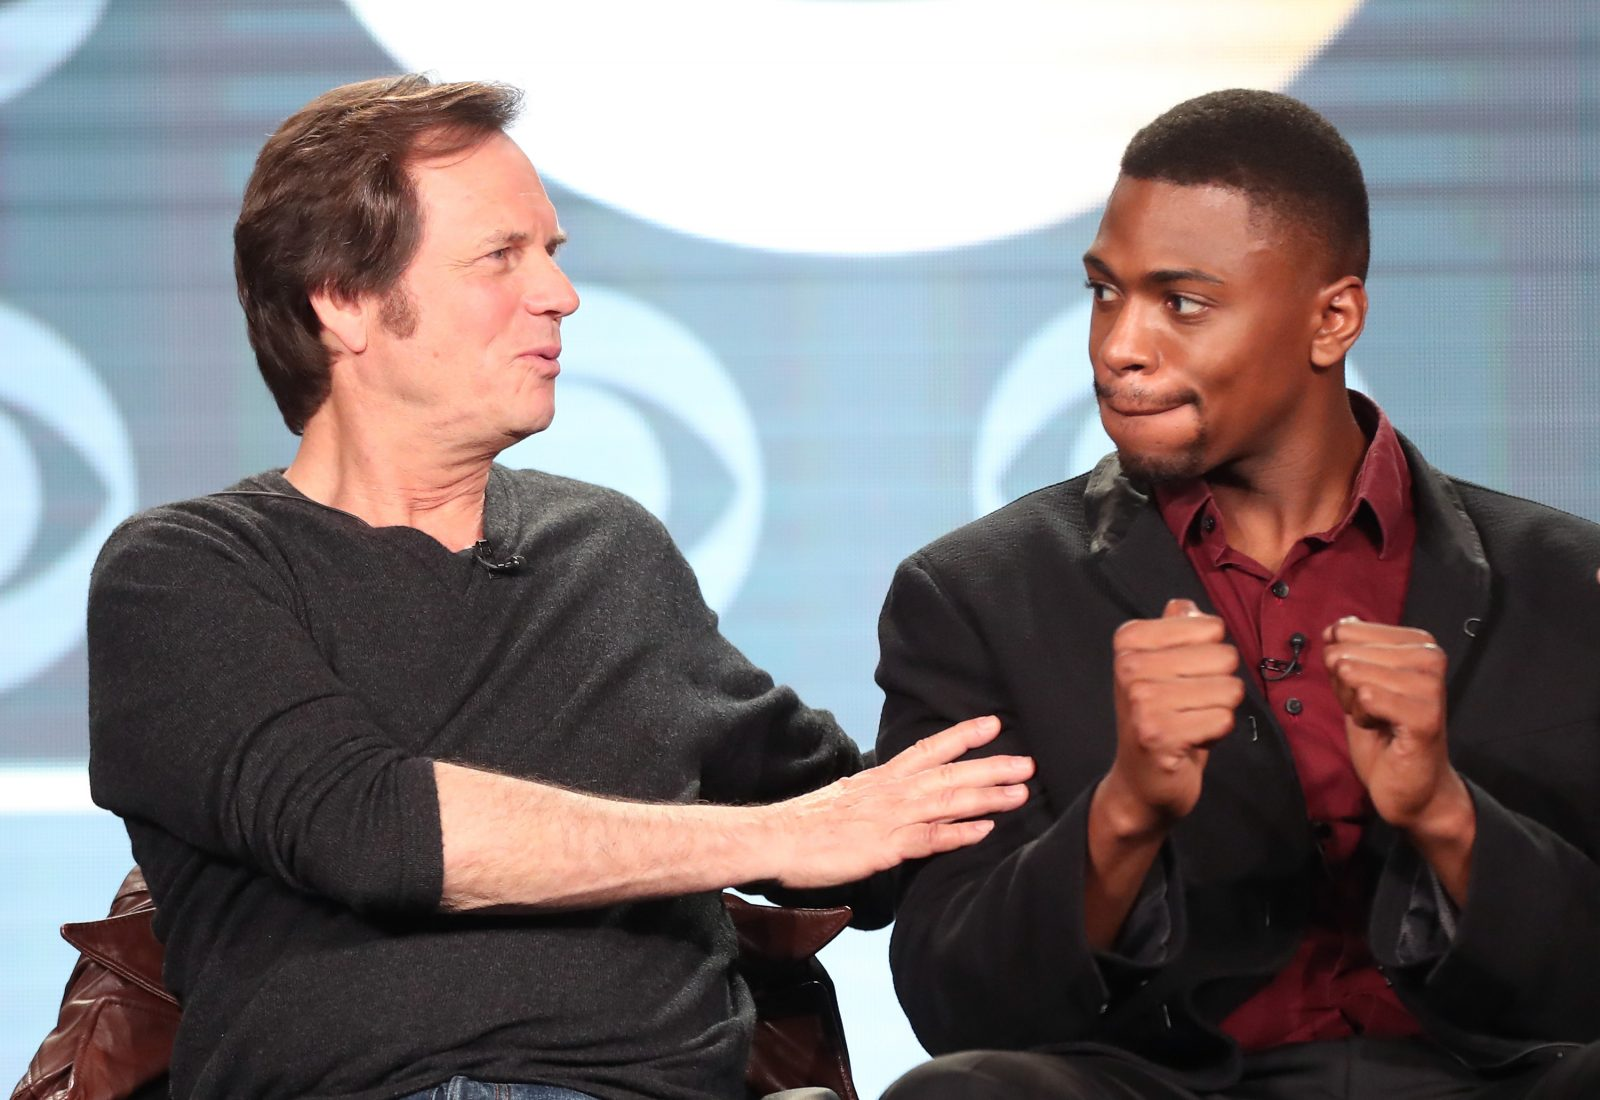 Actors Bill Paxton, left, and Justin Cornwell of the television show 'Training Day' speak onstage during the CBS portion of the 2017 Winter Television Critics Association Press Tour in Pasadena. (Photo by Frederick M. Brown/Getty Images)